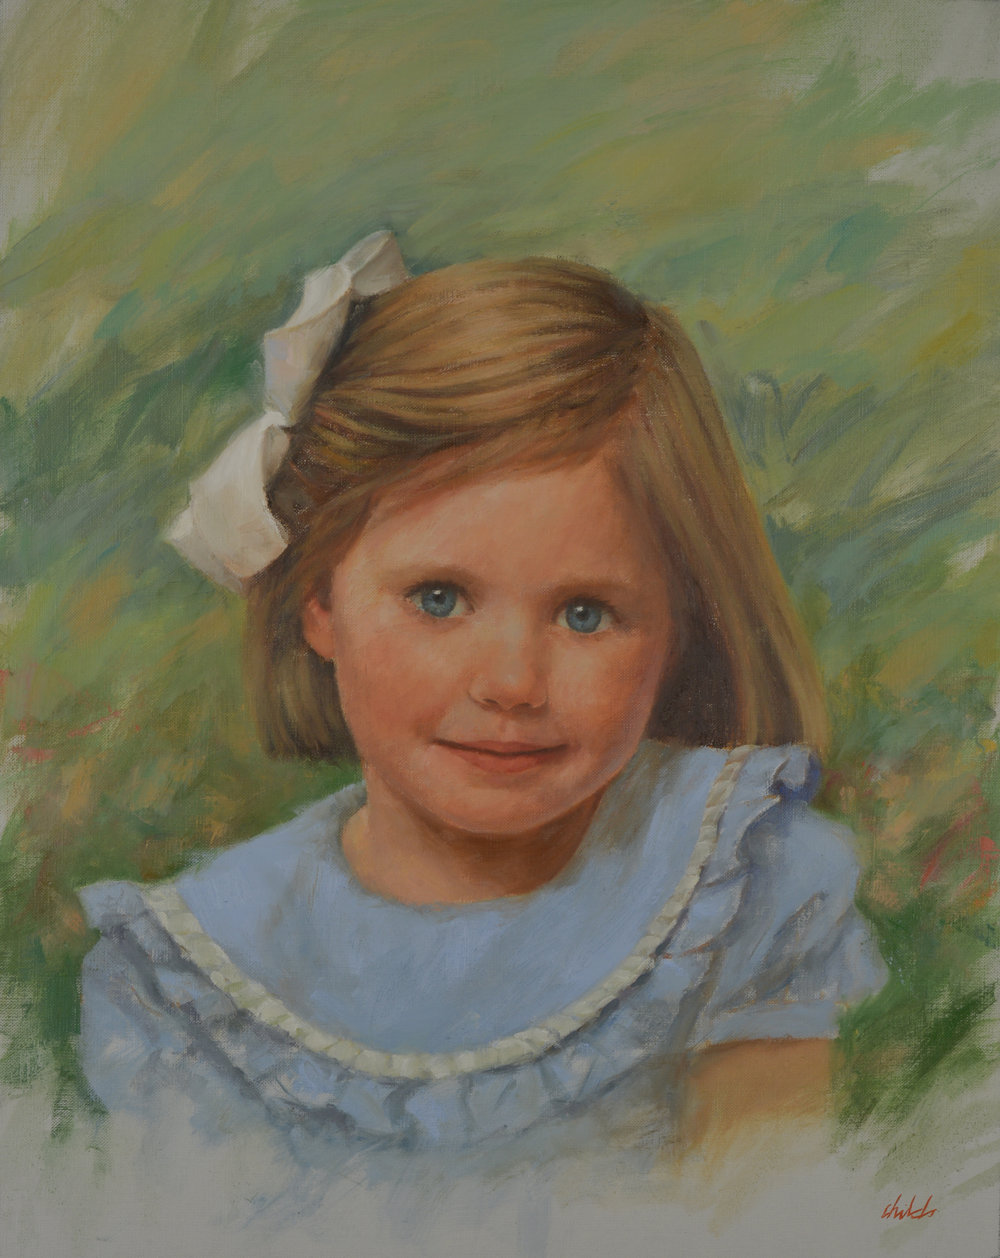 Girl with Blue Dress & White Bow - 20x16